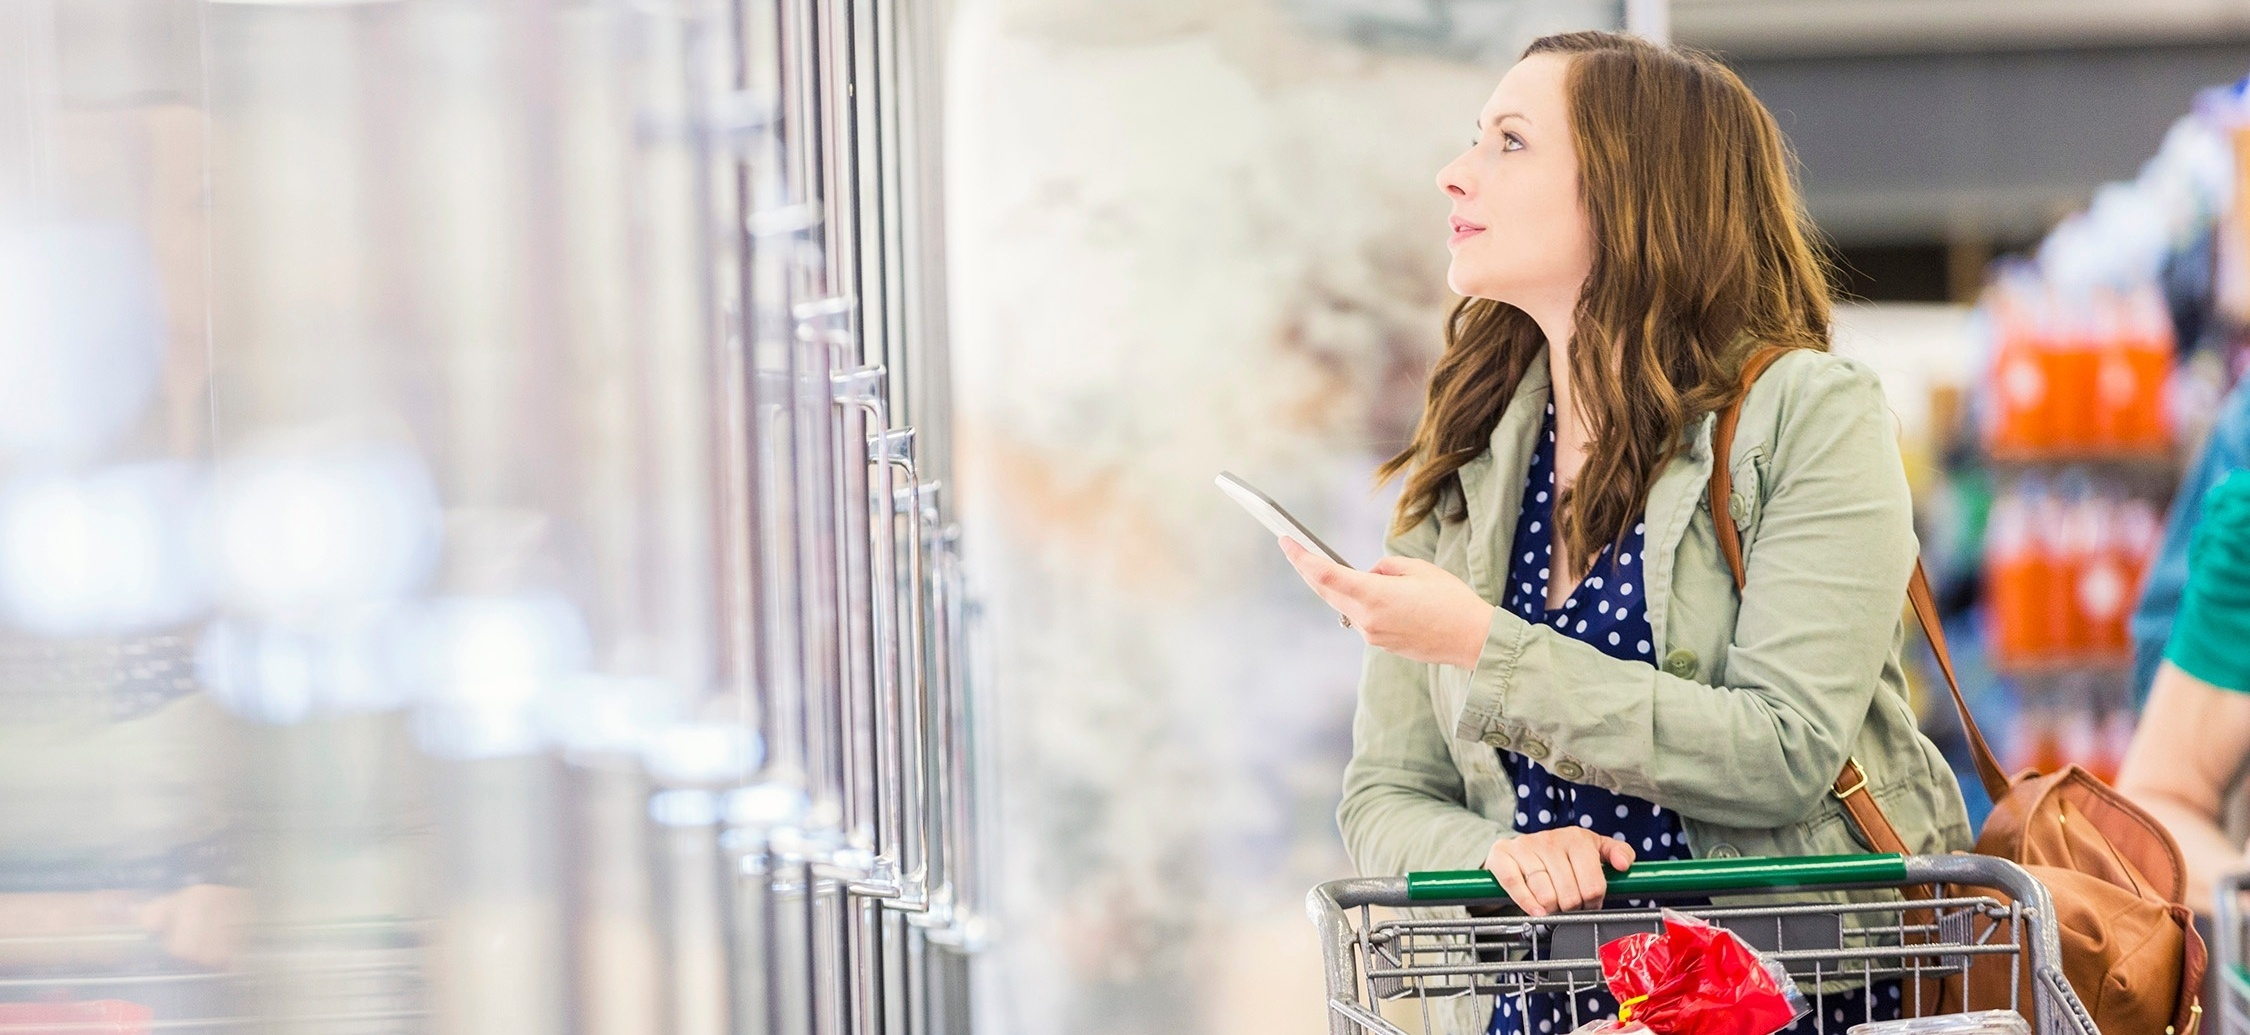 iStock-538863826 grocery woman small-947203-edited.jpg